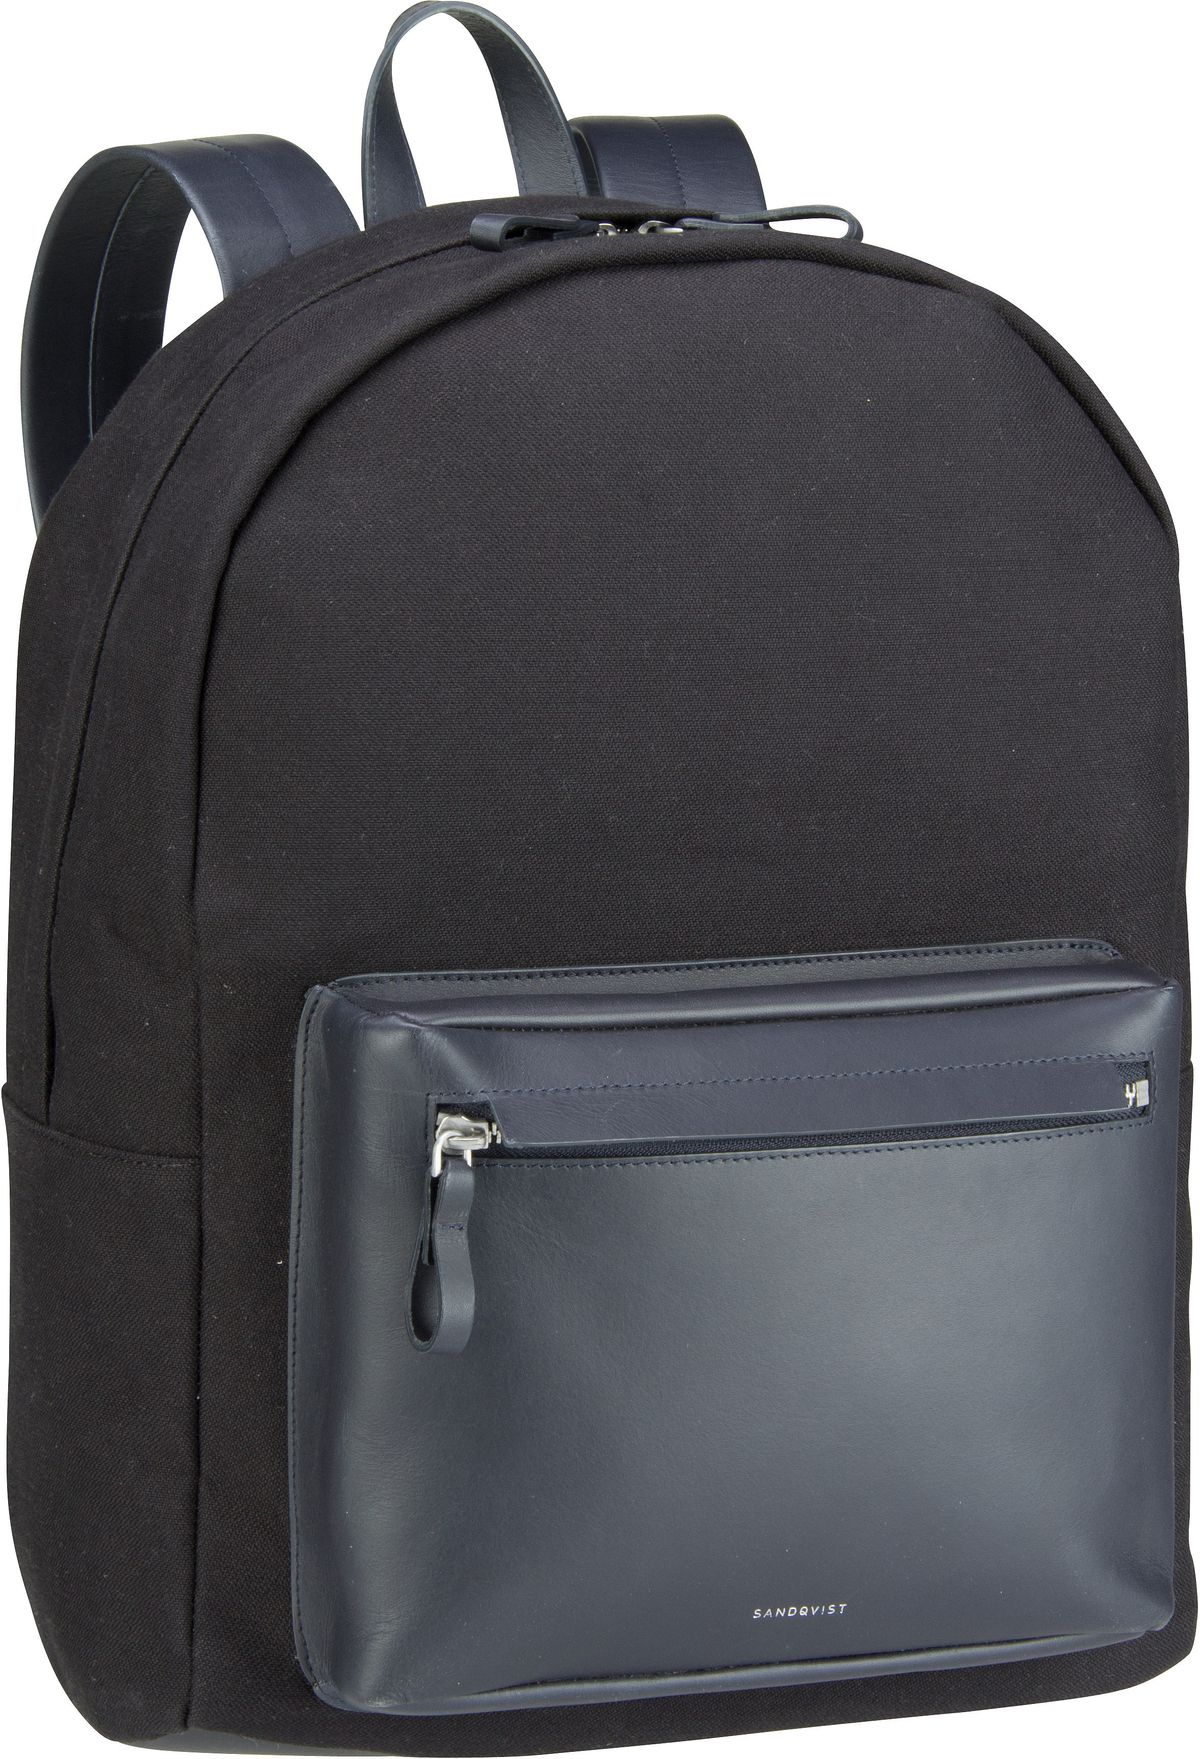 Rucksack / Daypack Ingvar Twill Backpack Black Twill/Navy Leather (15 Liter)